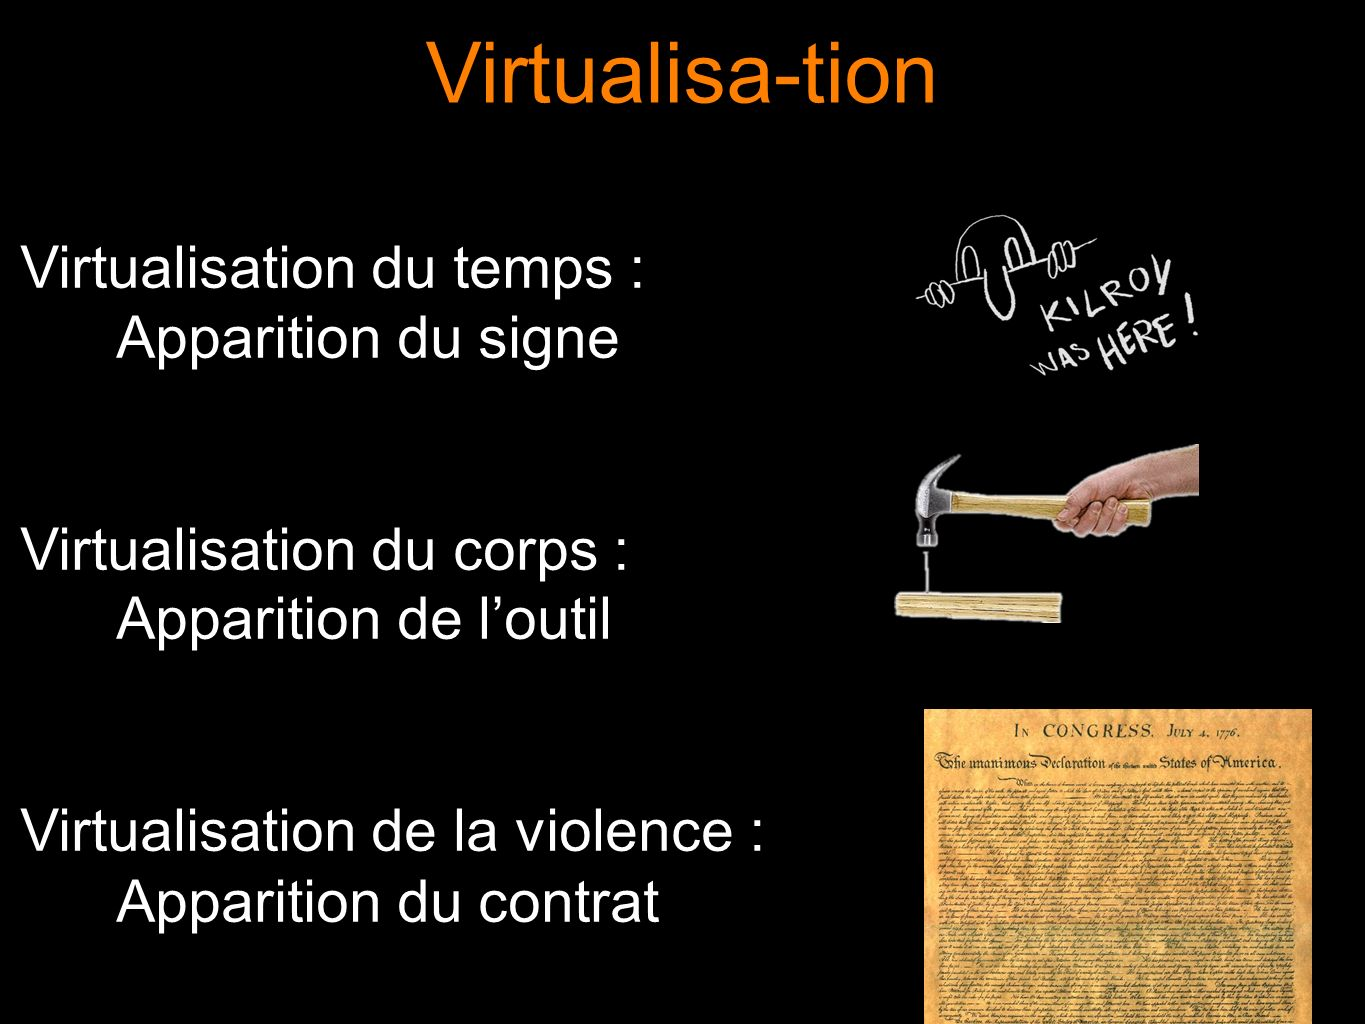 Virtualisa-tion Virtualisation du temps : Apparition du signe